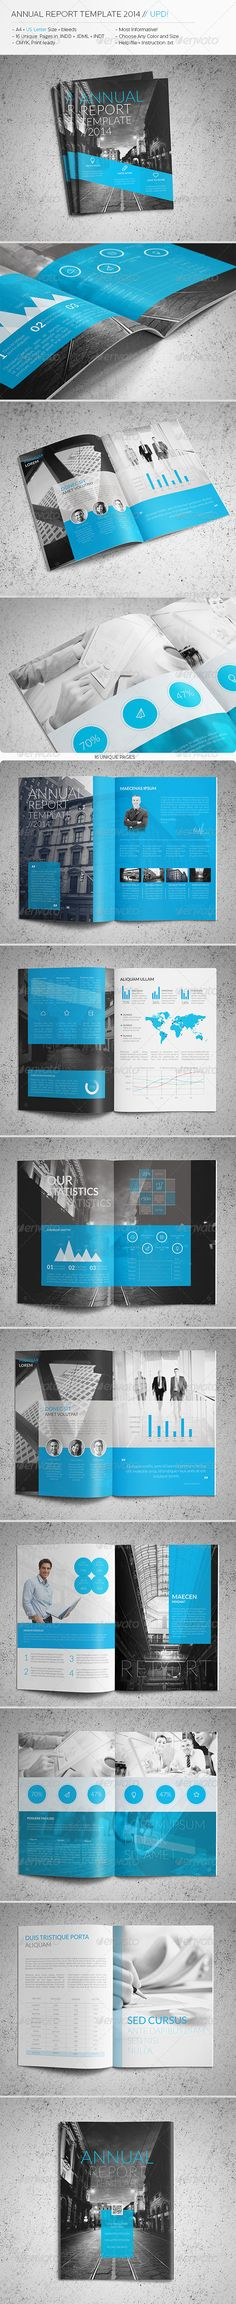 Quick Annual Report 2014 — InDesign INDD #report #quick • Available here → https://graphicriver.net/item/quick-annual-report-2014/5863987?ref=pxcr